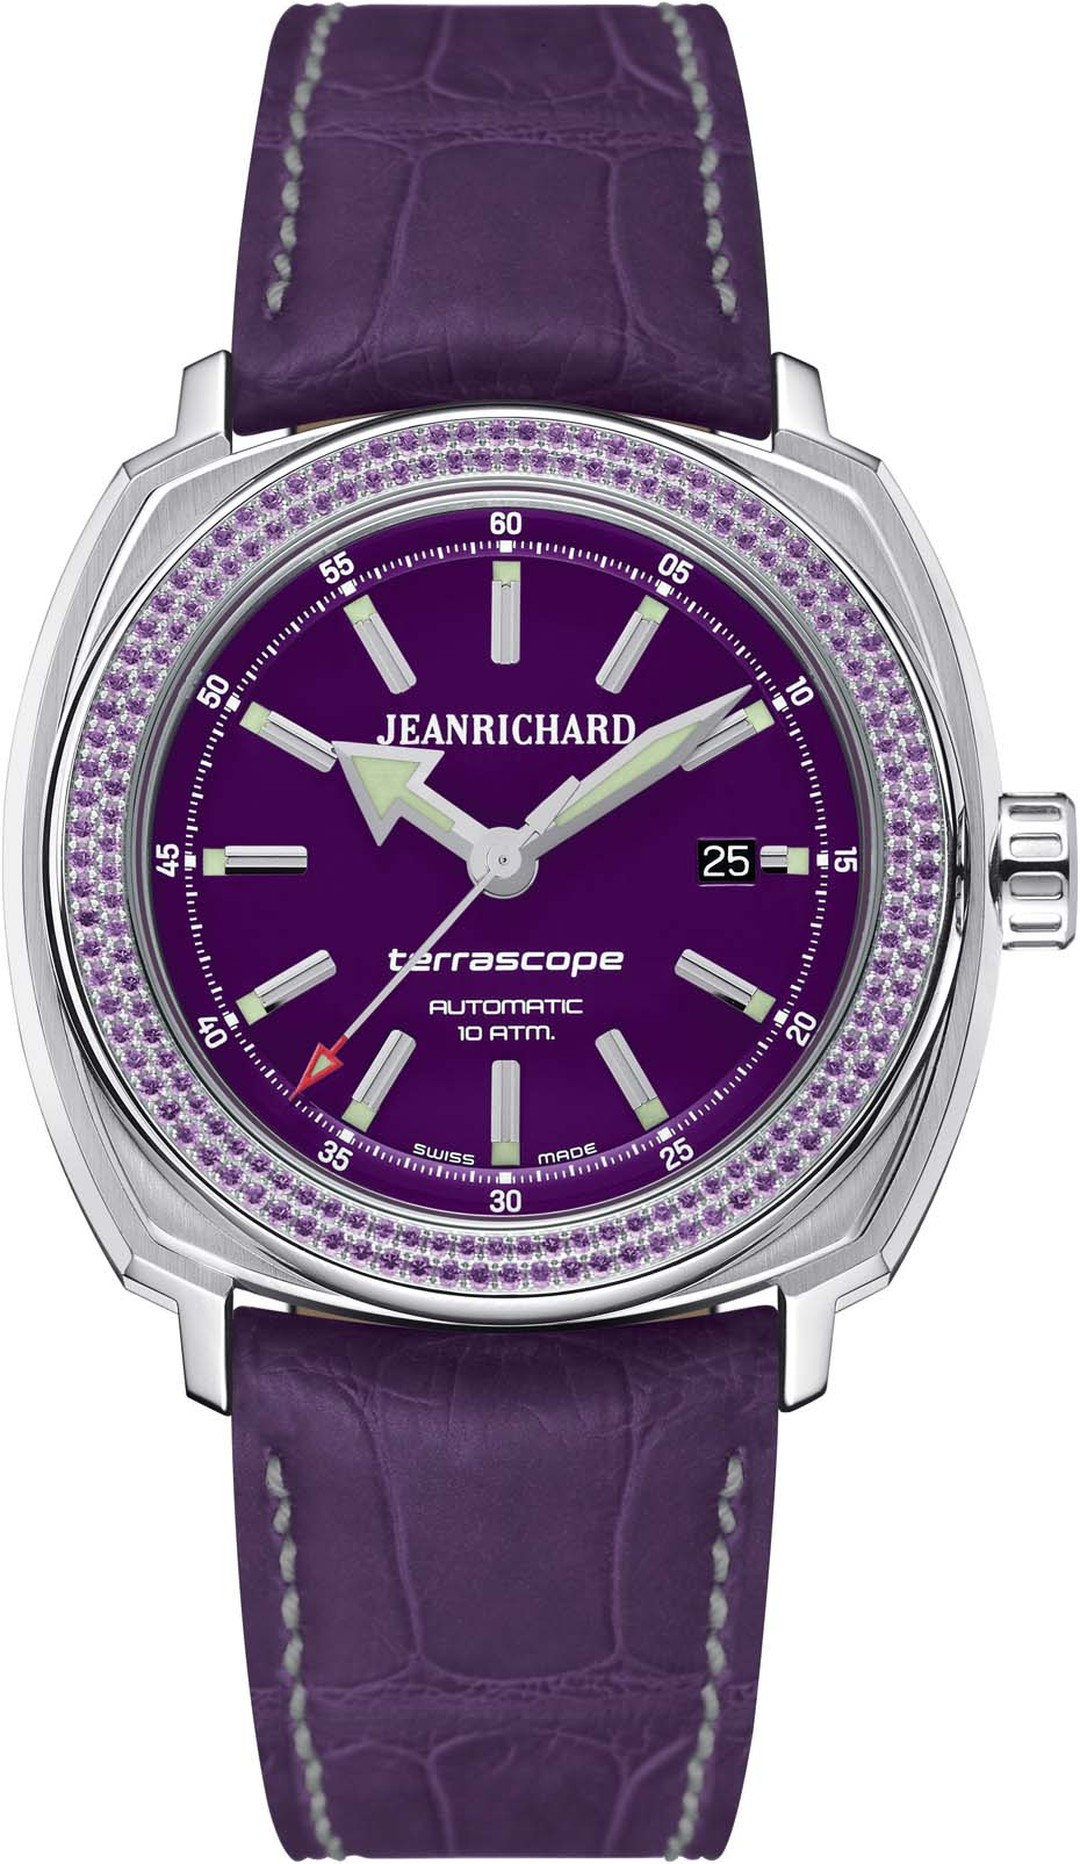 JeanRichard Terrascope ladies watch with a purple dial and bezel set with 88 amethysts.